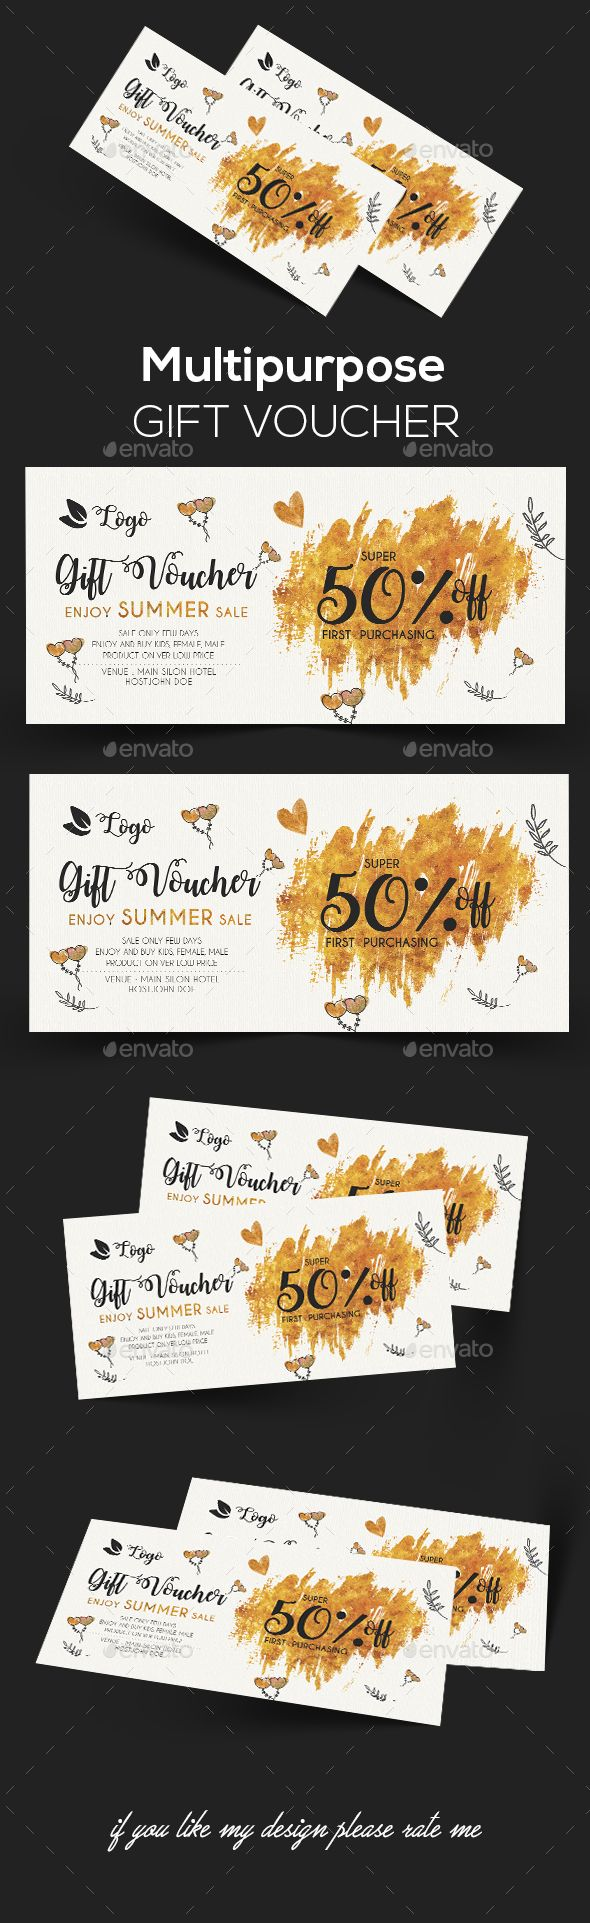 Gift Voucher | Template, Font logo and Logos